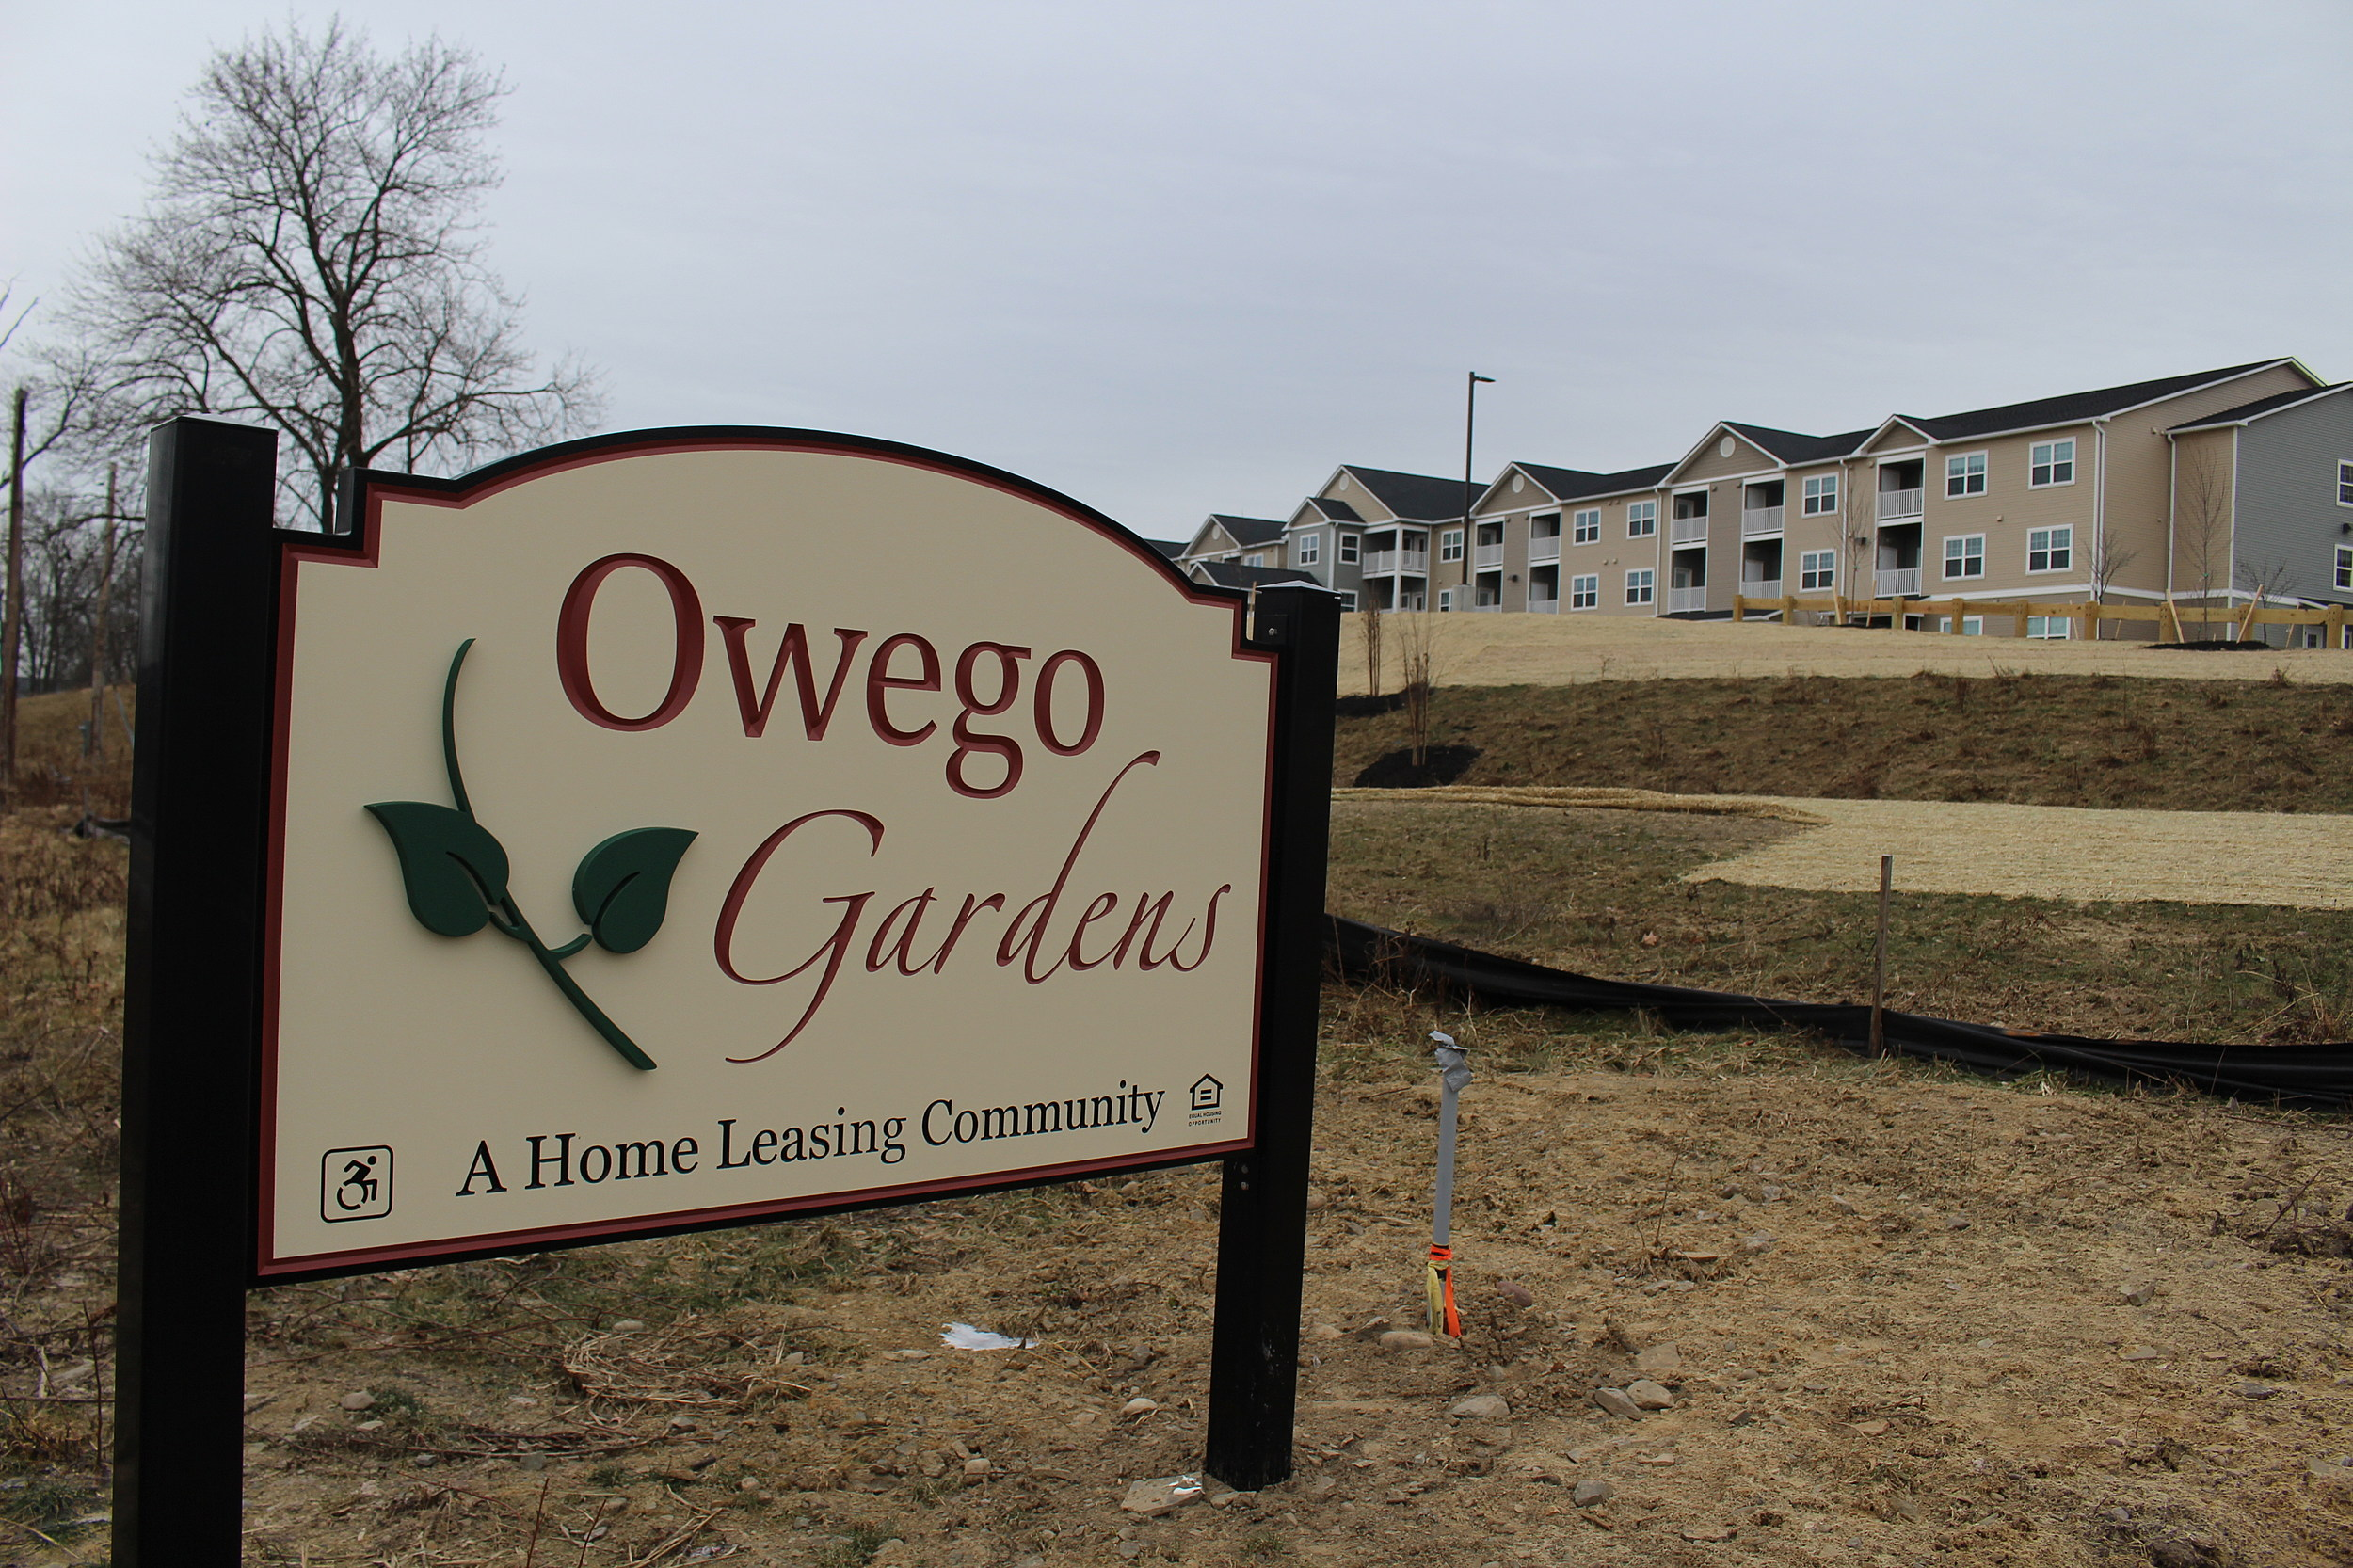 The Tioga County Apartments Are Designed For People Over The Age Of 55.  (Photo: Bob Joseph/WNBF News)